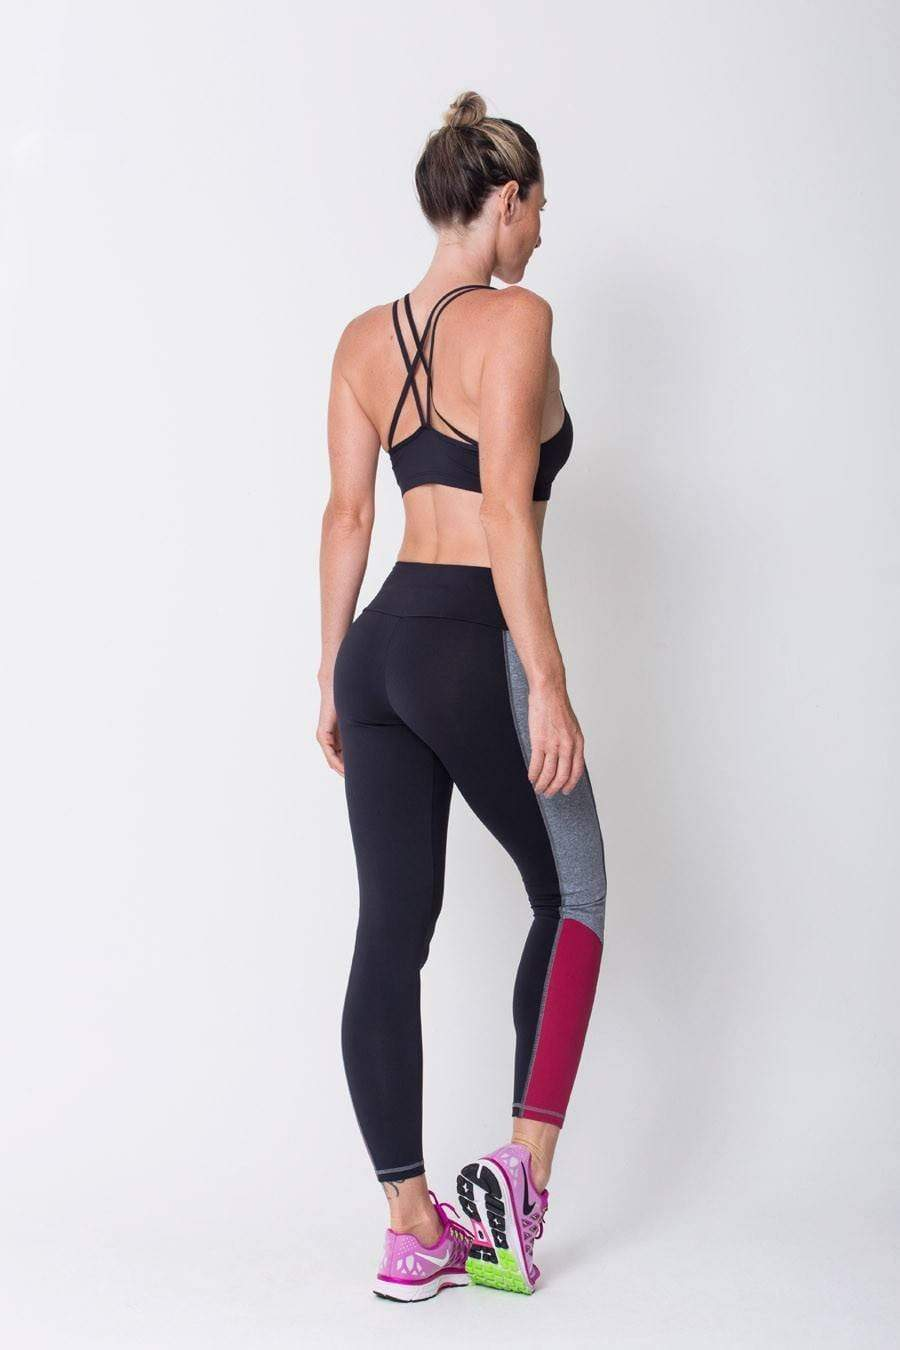 Black Contrast Legging - Sam's Fitness Goods